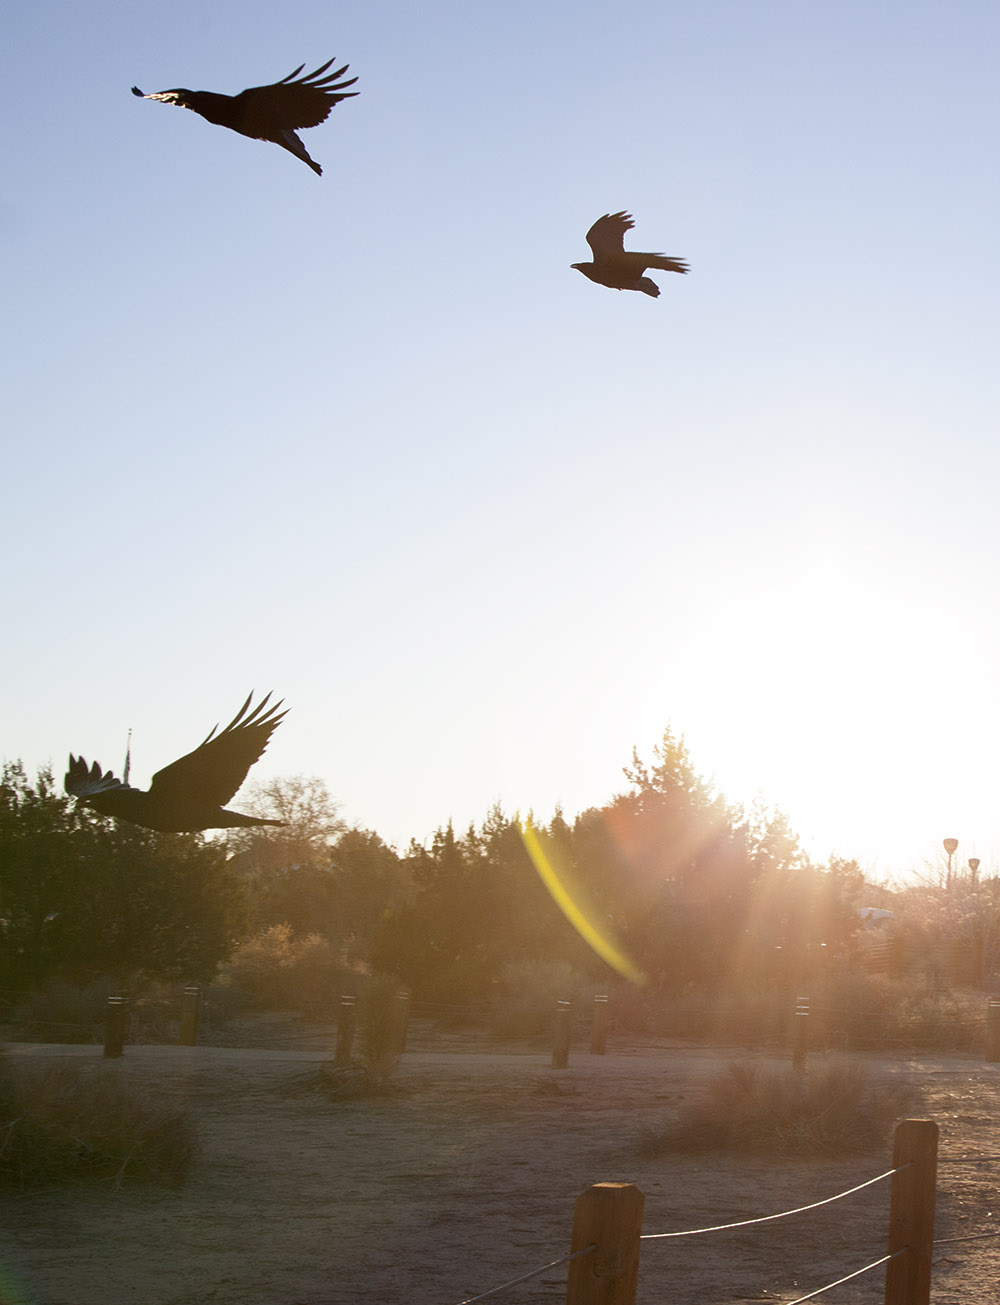 Birds soared in the air above the preserve.